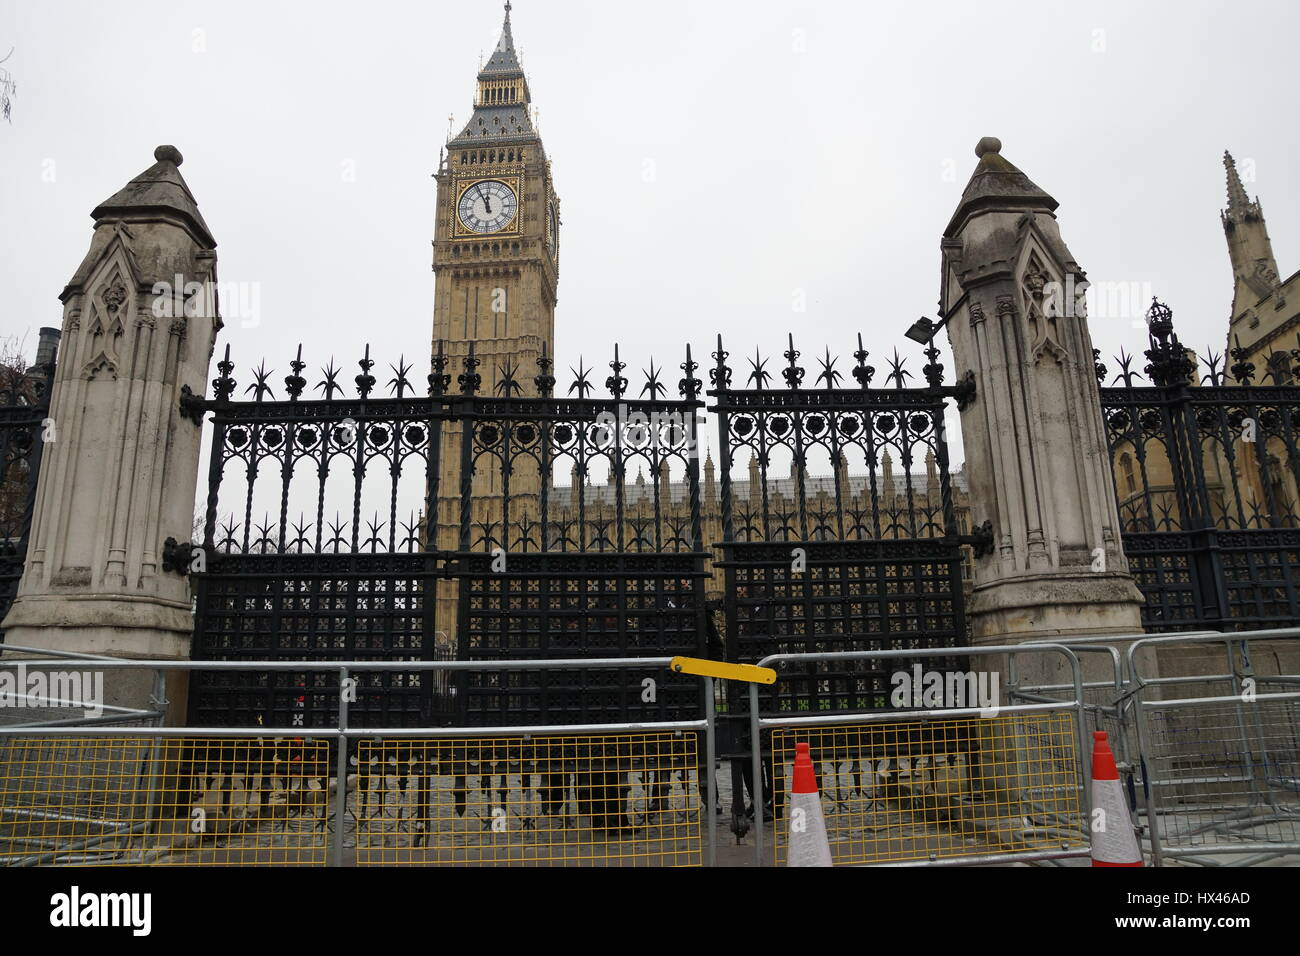 London, UK. 23rd Mar, 2017. The gates at St Stephen's entrance outside the Houses of Parliament in the wake - Stock Image